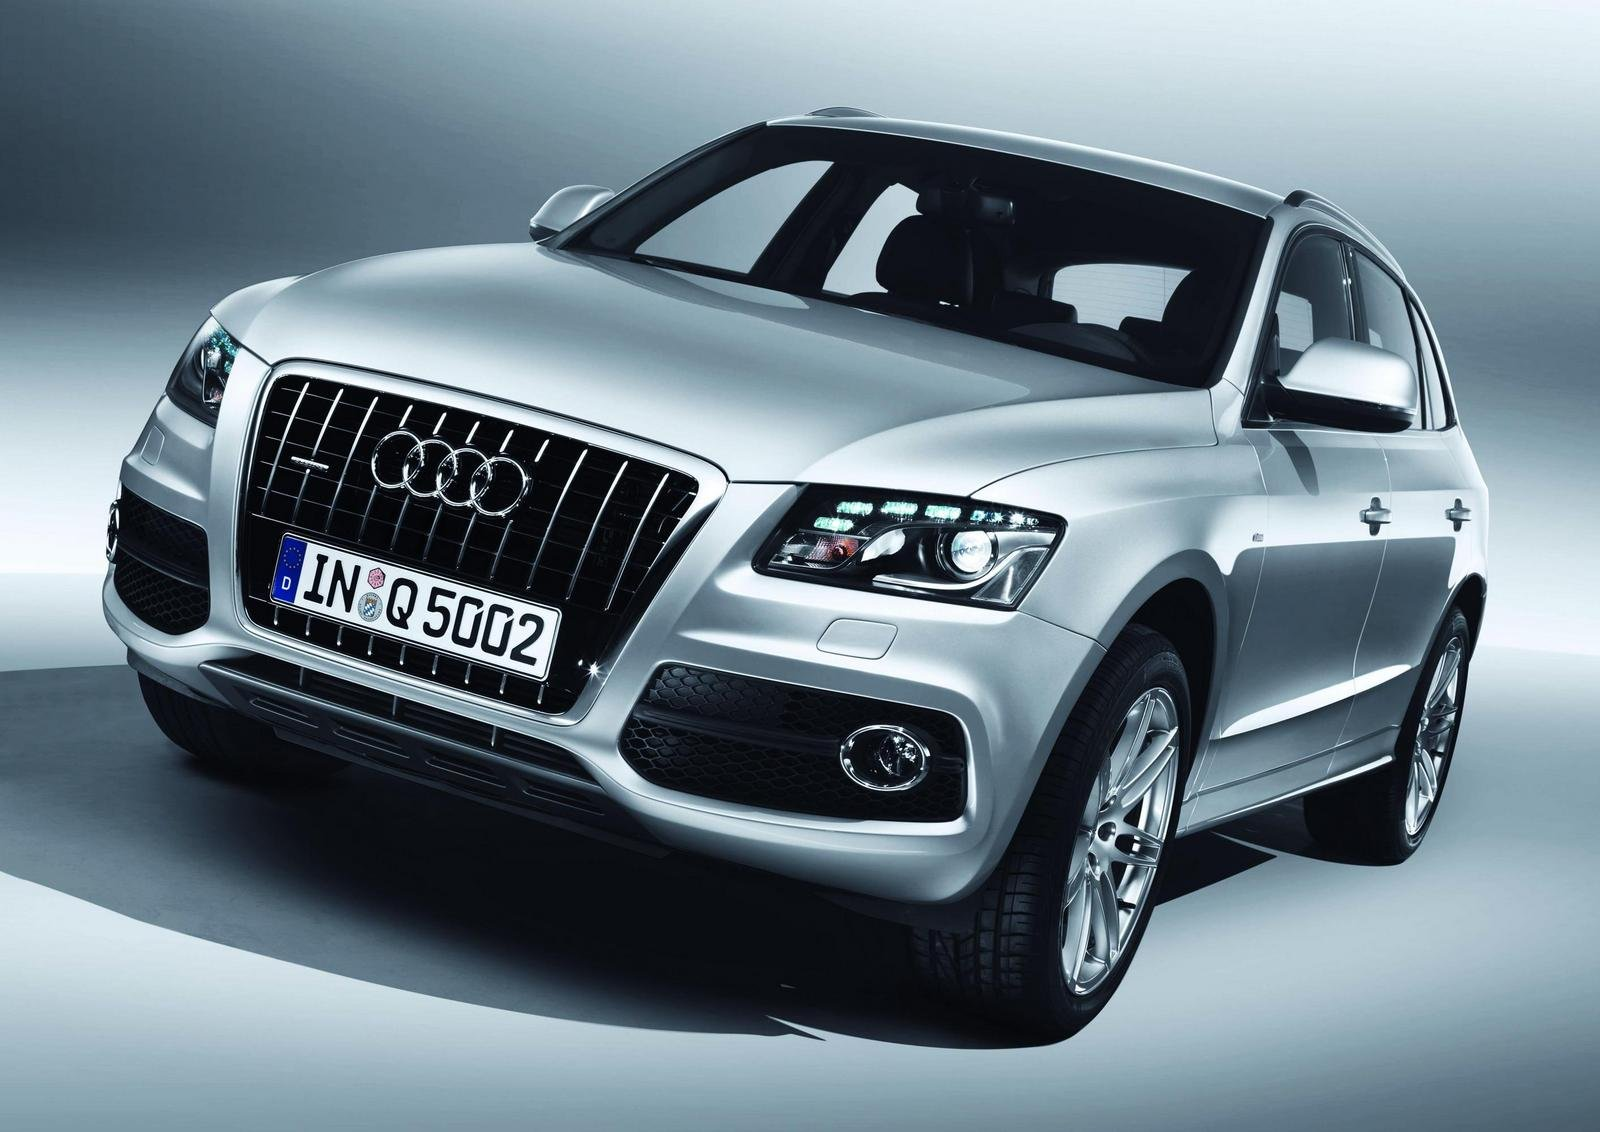 audi q5 s line first official images news top speed. Black Bedroom Furniture Sets. Home Design Ideas